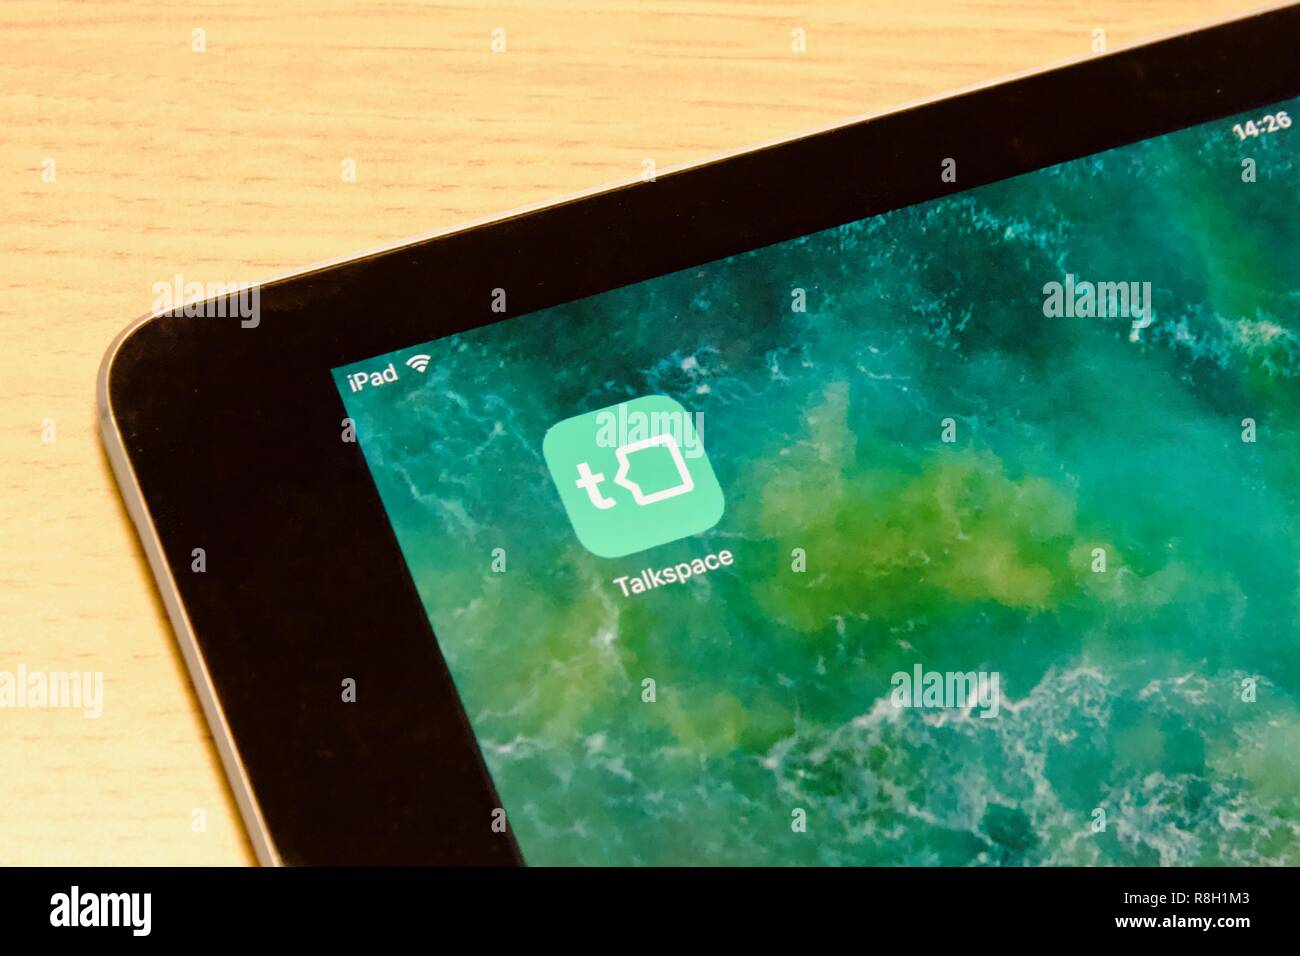 Talkspace app on an iPad Air, providing online therapy and counselling - Stock Image